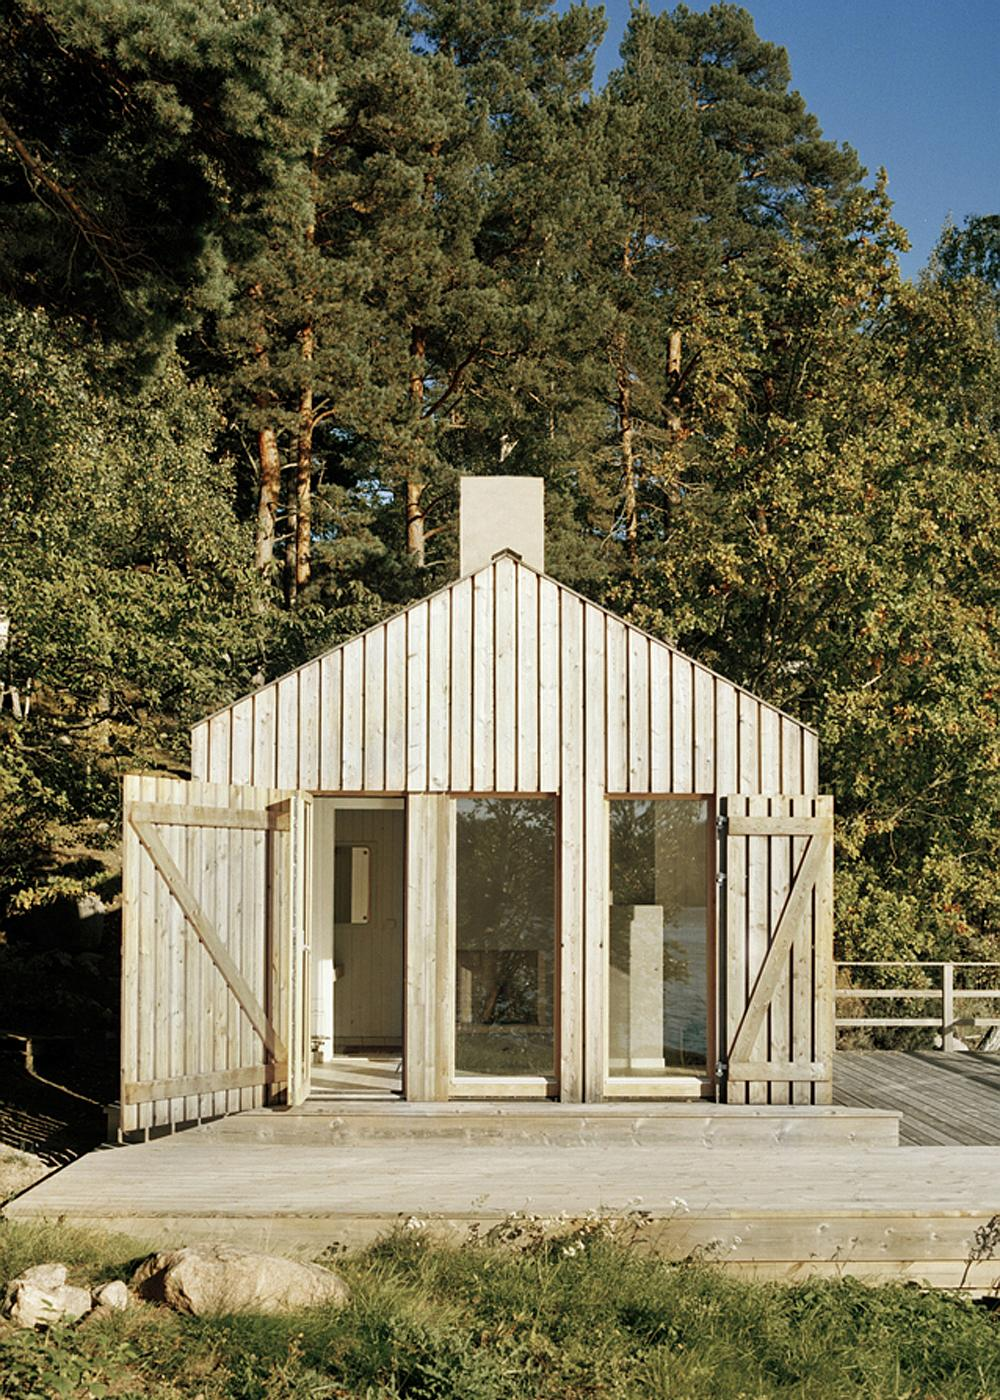 Sauna Plans Plans Free Download | assorted64yuo